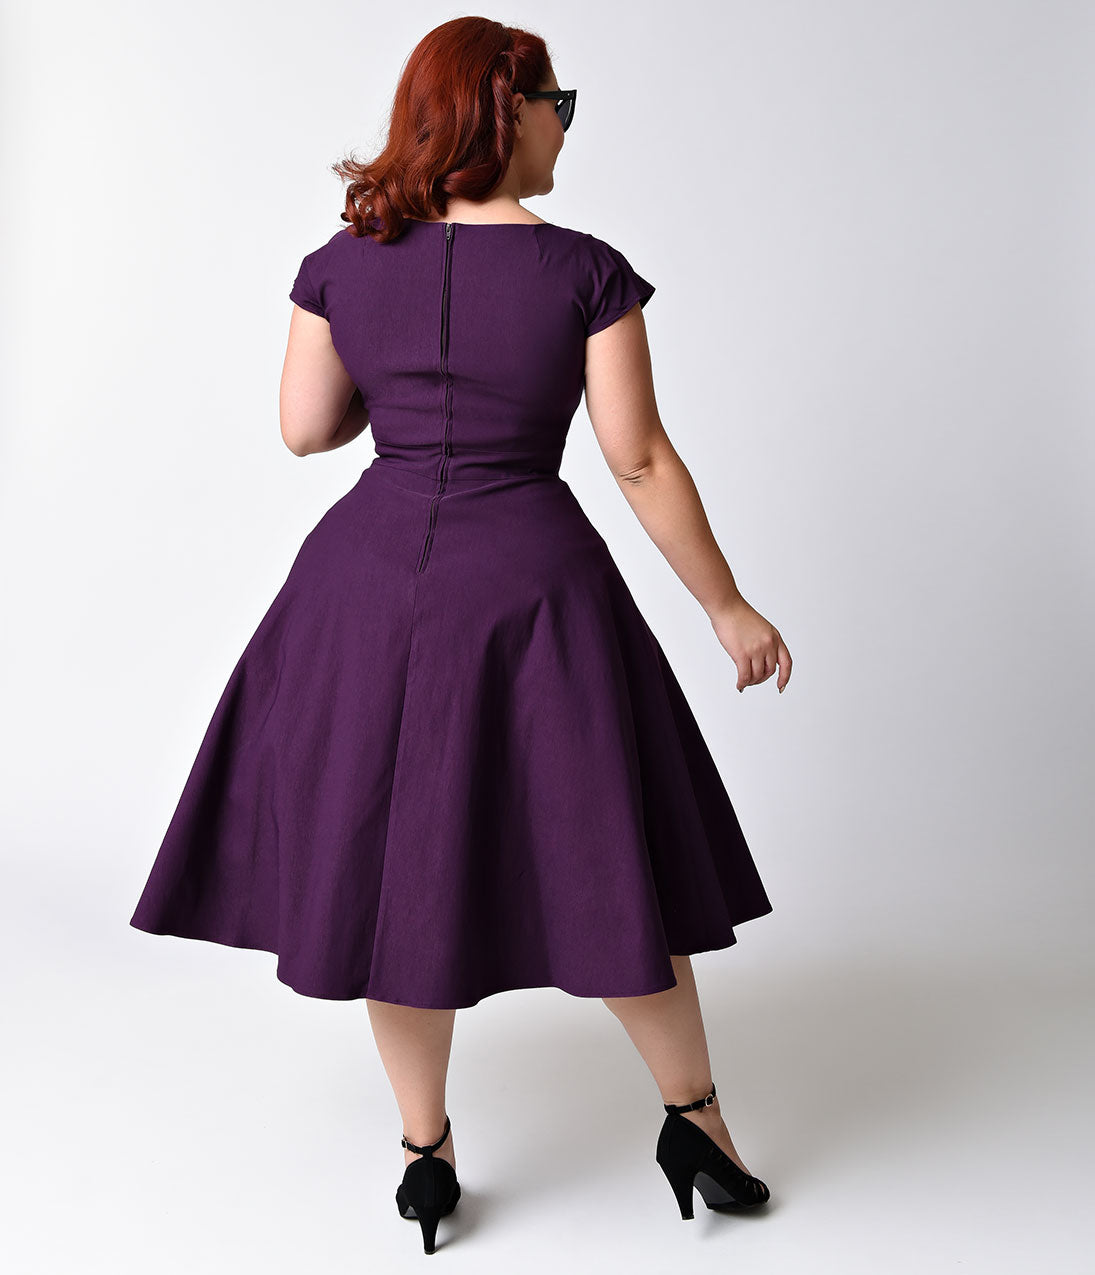 e6dcf213aae Plus Size Mad Style Eggplant Cap Sleeve Swing Dress